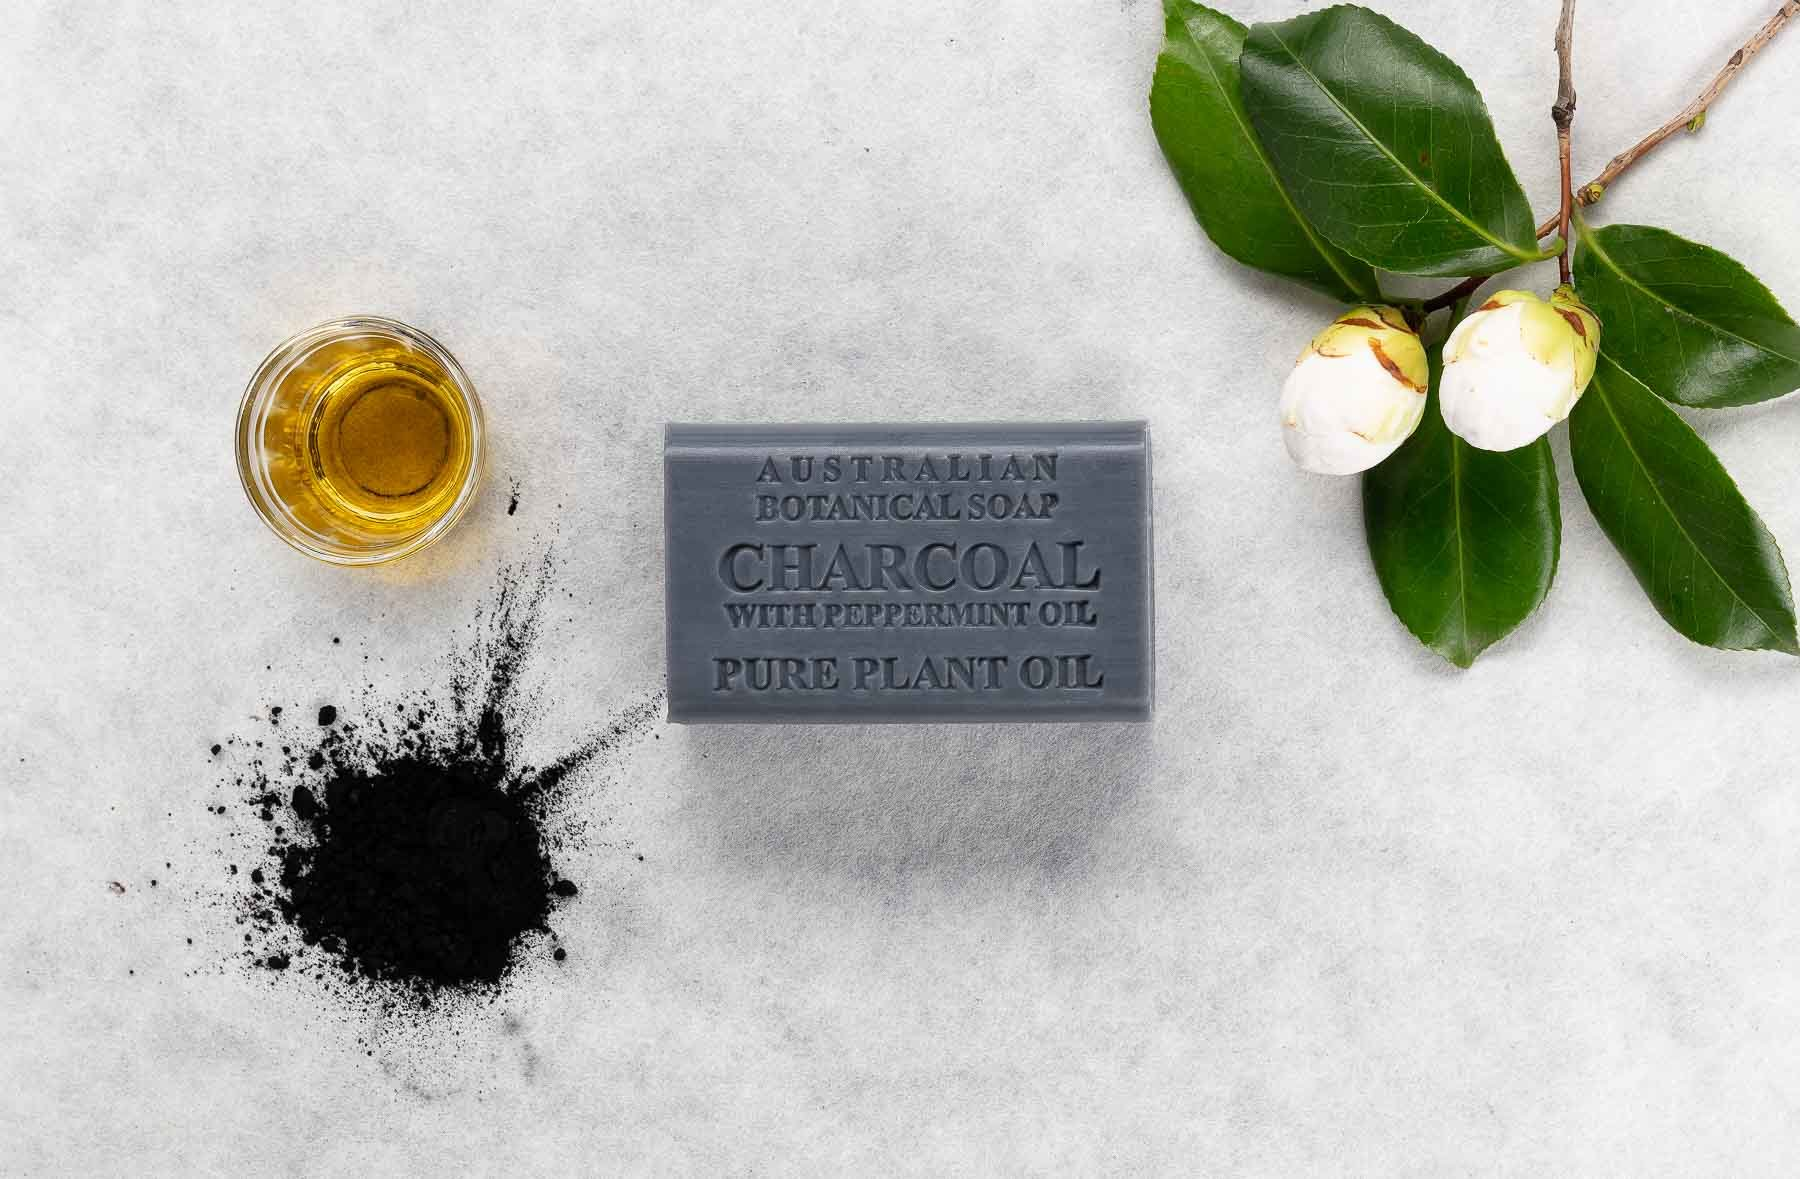 Australian Botanical Soap charcoal with charcoal and oil over the top view - Lifestyle advertising product photo